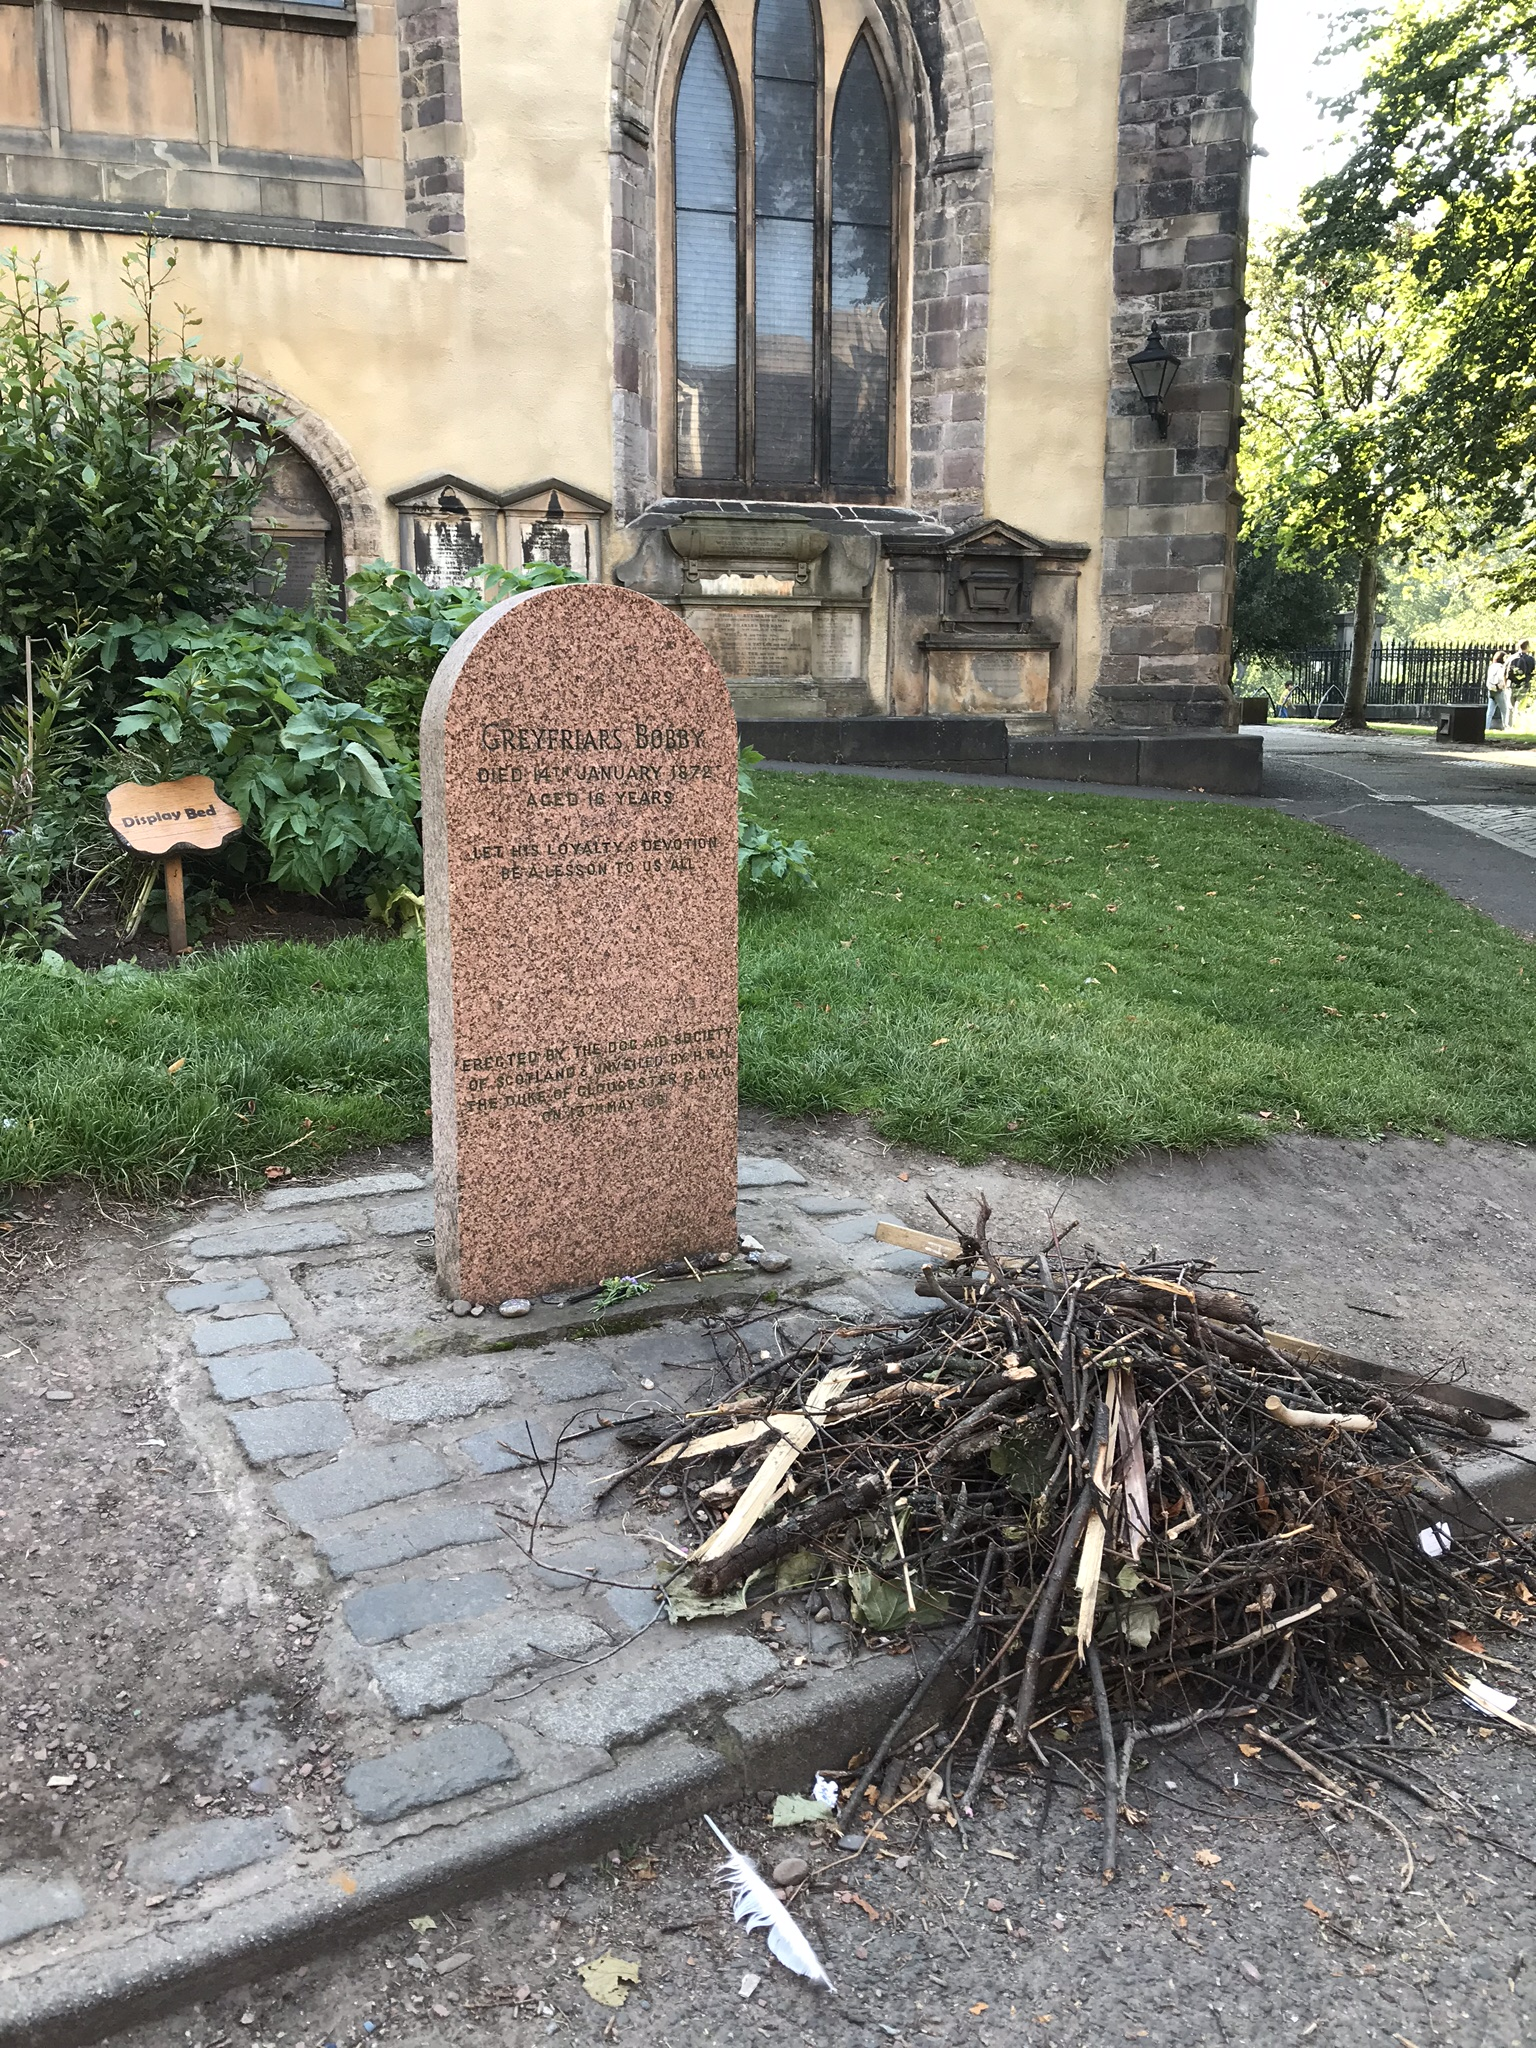 Pile of sticks on Greyfriars Bobby's grave